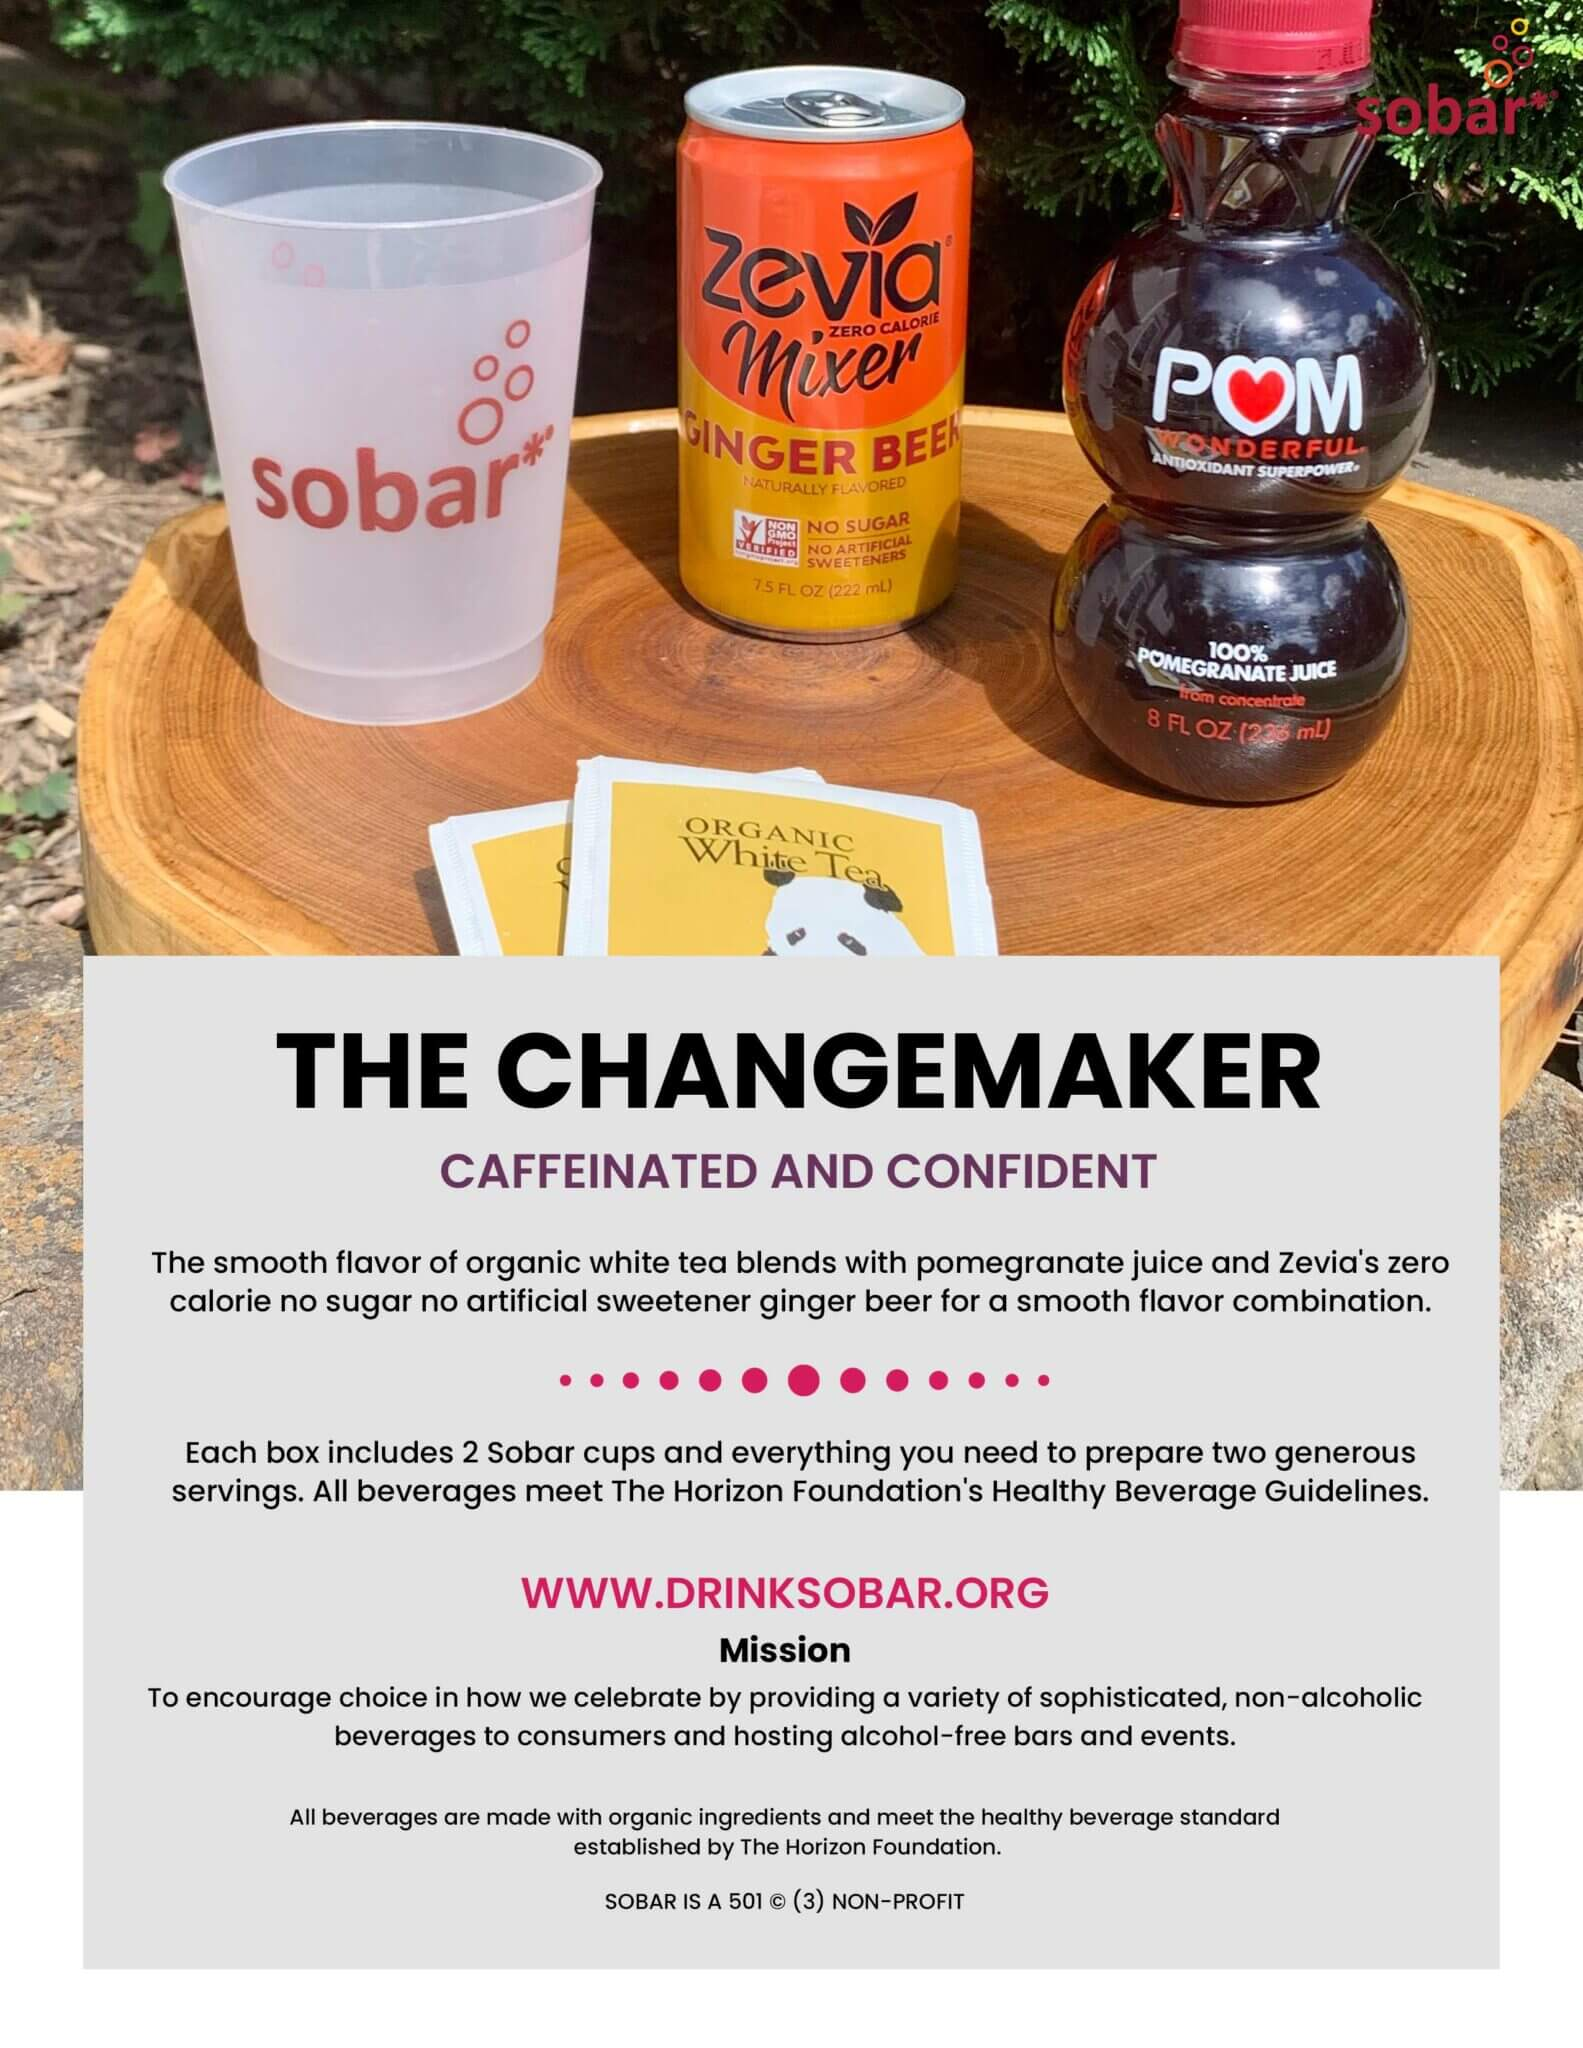 The Changemaker scaled